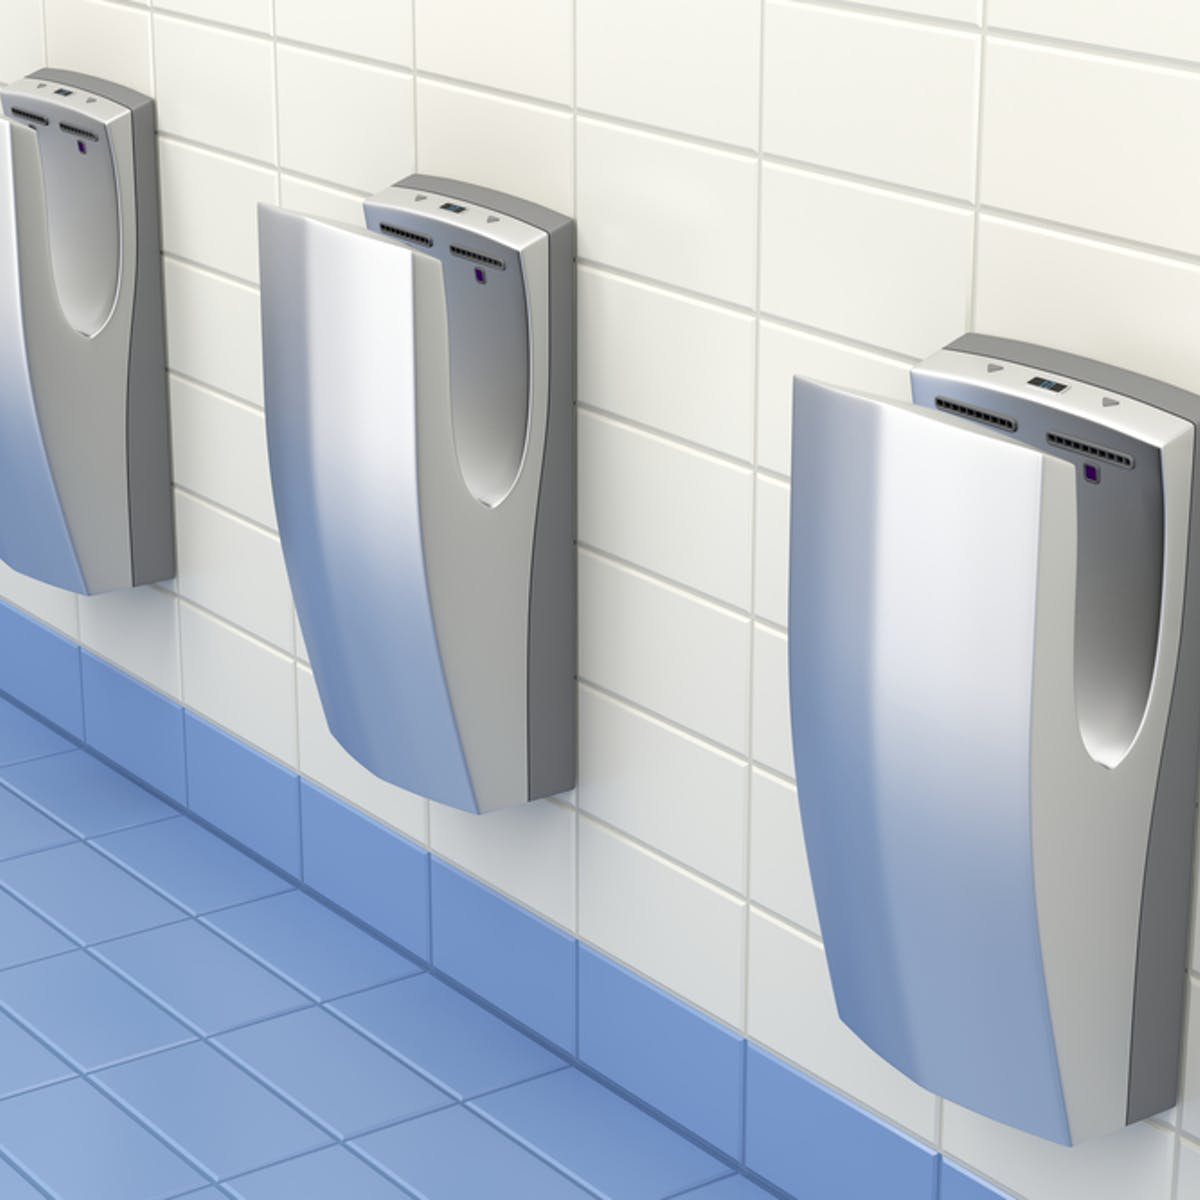 Hands dryers placed in washrooms for customers instead of paper towels